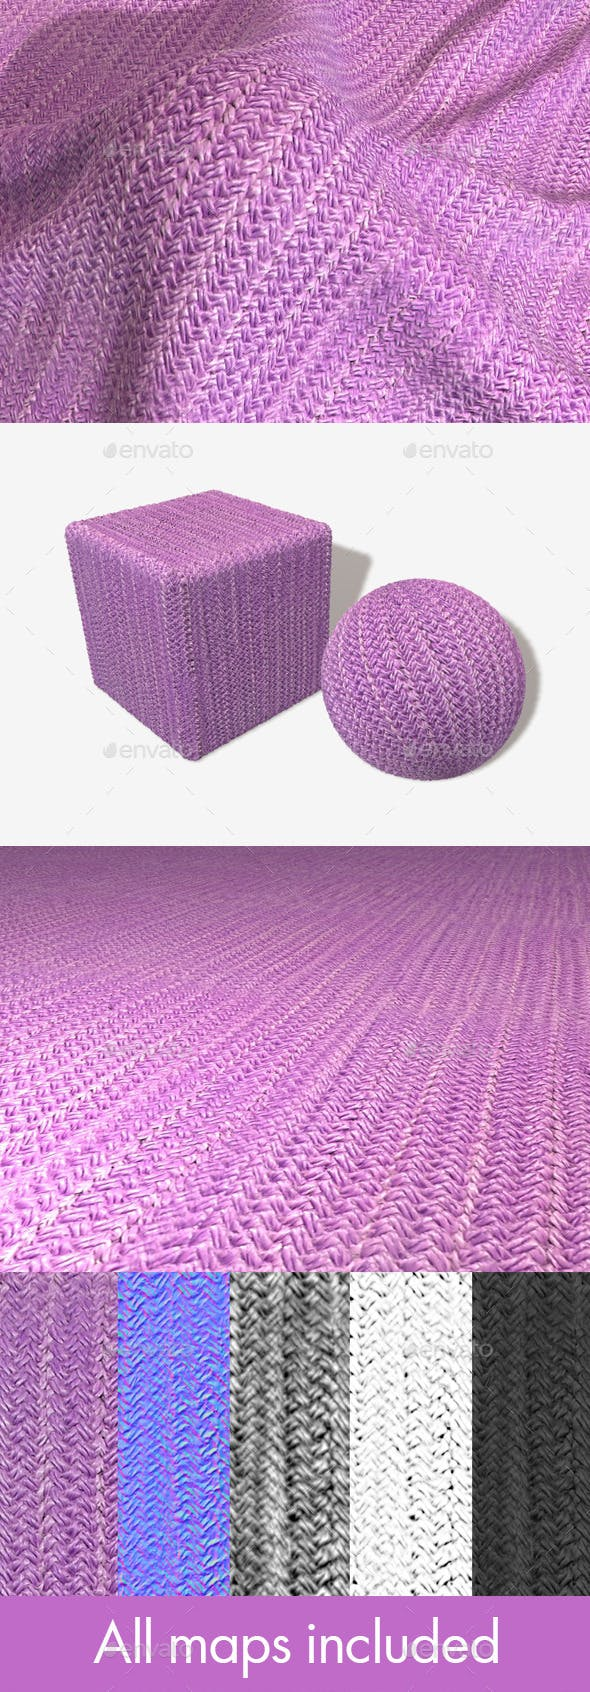 Thick Knitted Fabric Seamless Texture - 3DOcean Item for Sale